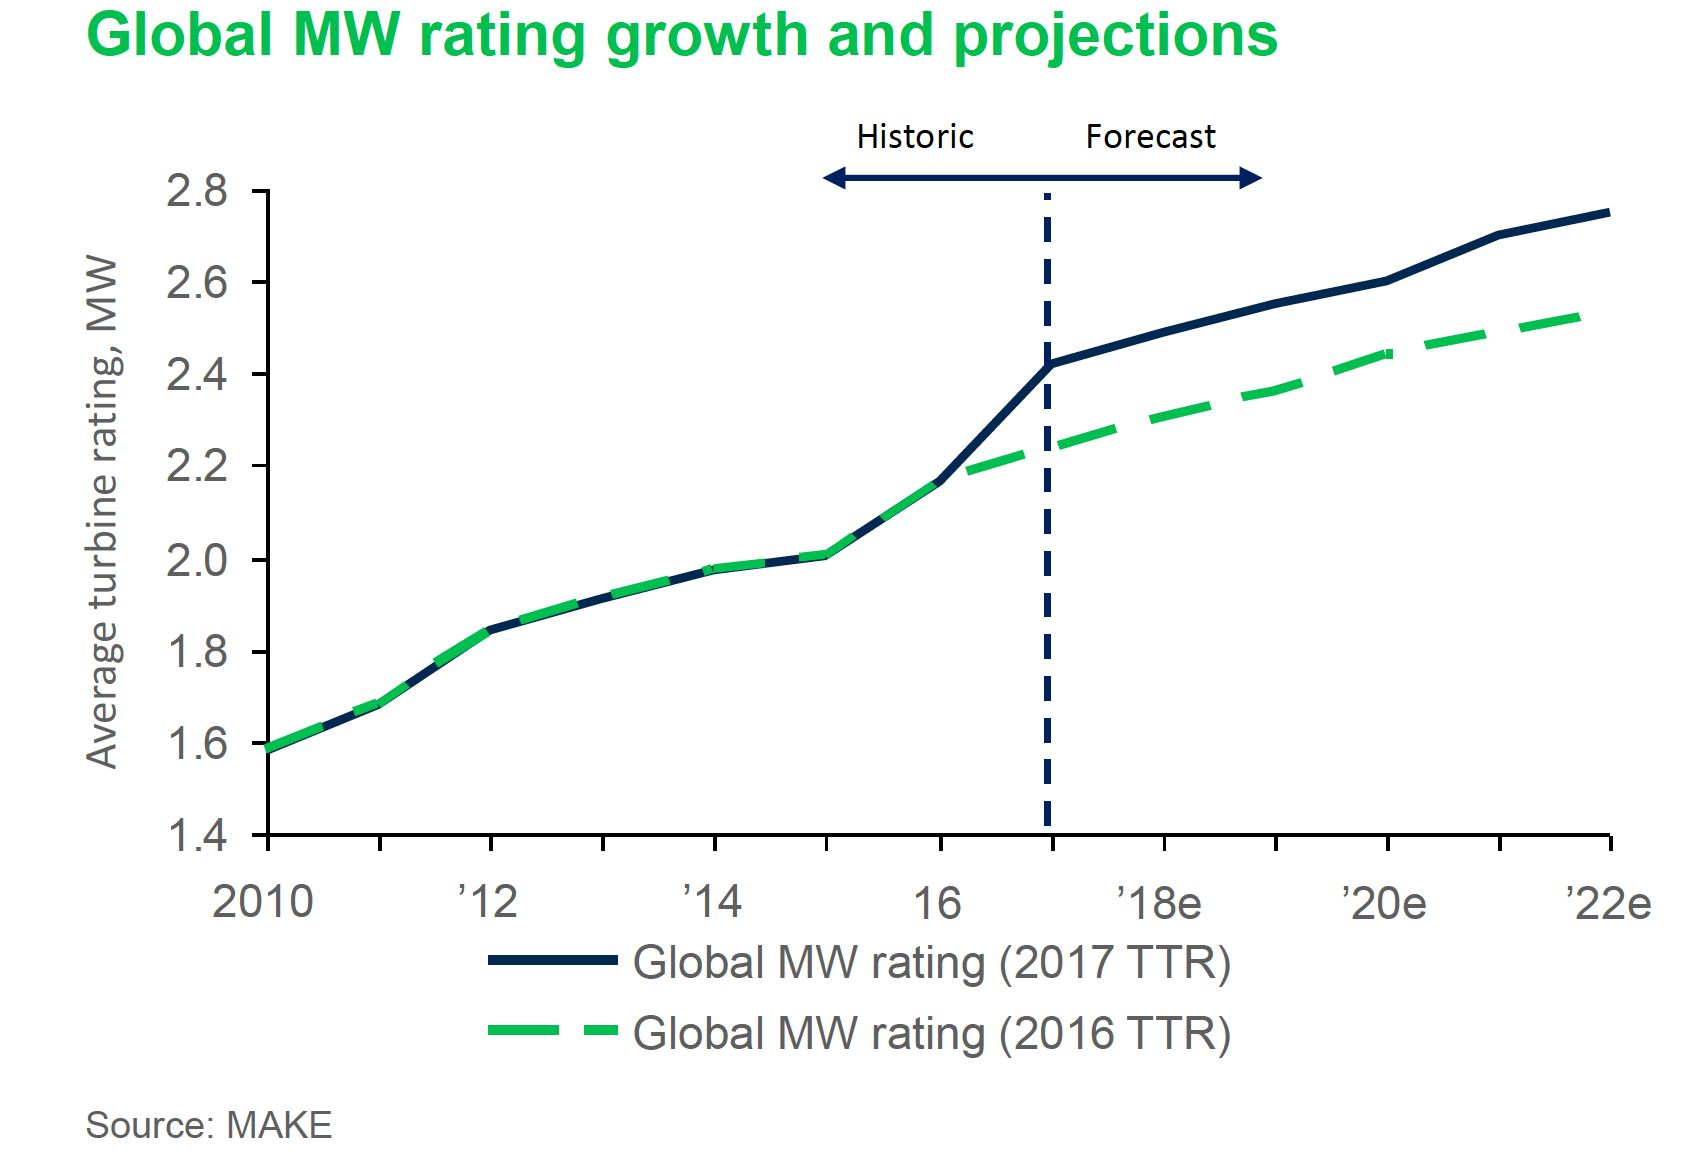 hight resolution of the average rating of wind turbines worldwide is now expected to reach 2 8 megawatts by 2022 up from a prediction of around 2 5 megawatts a year ago